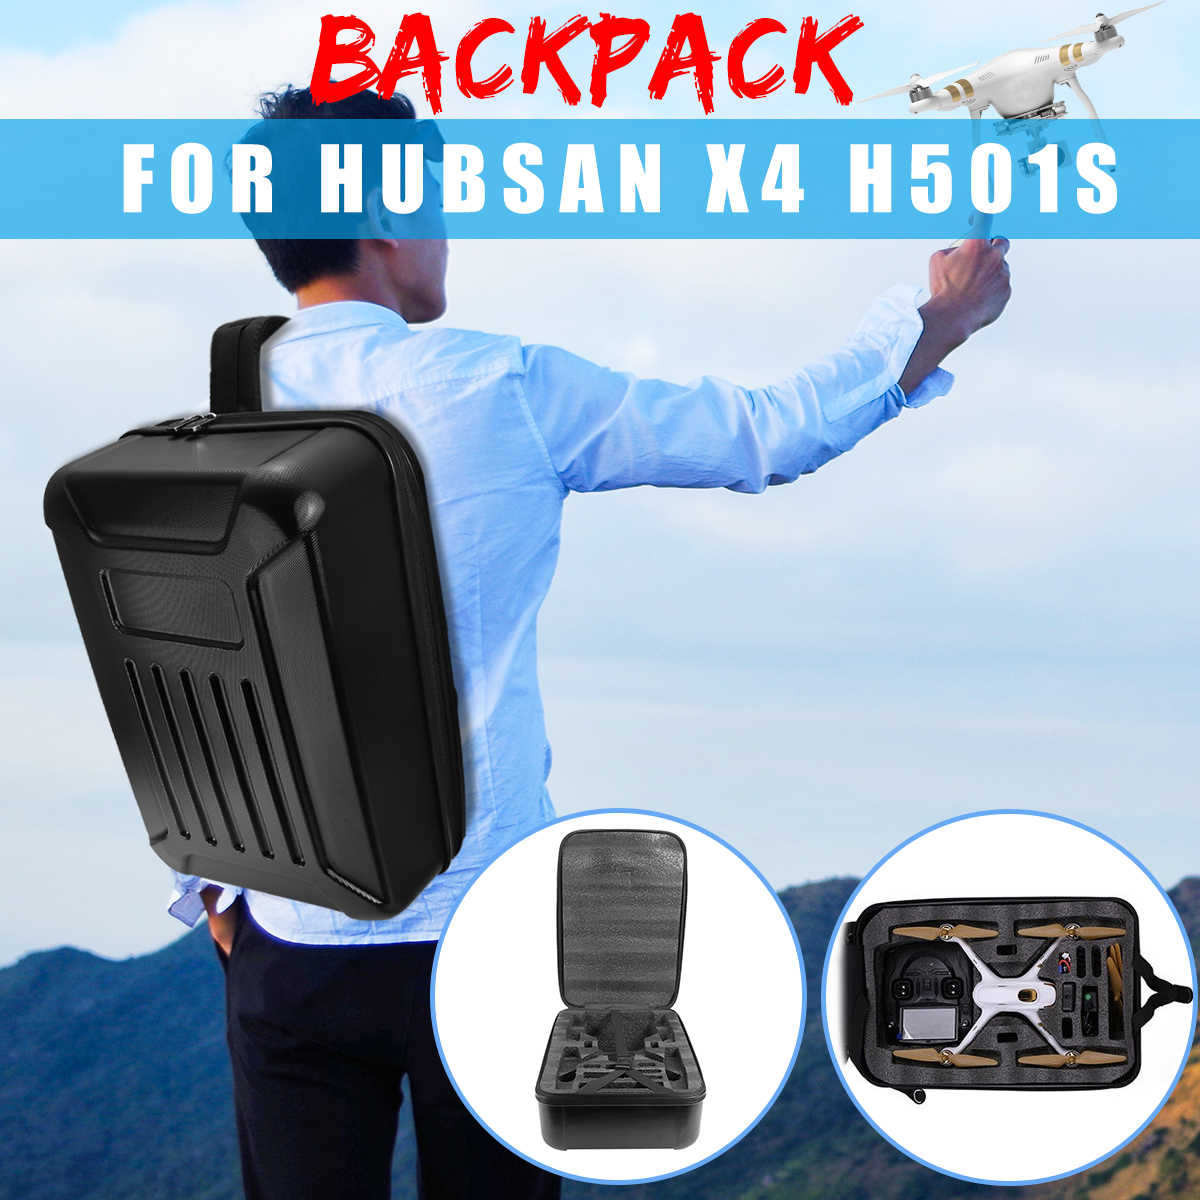 Black Waterproof Hard Shell Backpack Bag Box for Hubsan X4 H501S & H501C Camera Drone Carrying Case 1pcs hard shell backpack case bag camera drone bag backpack rc quadcopter case bag for hubsan x4 h501s rc quadcopter